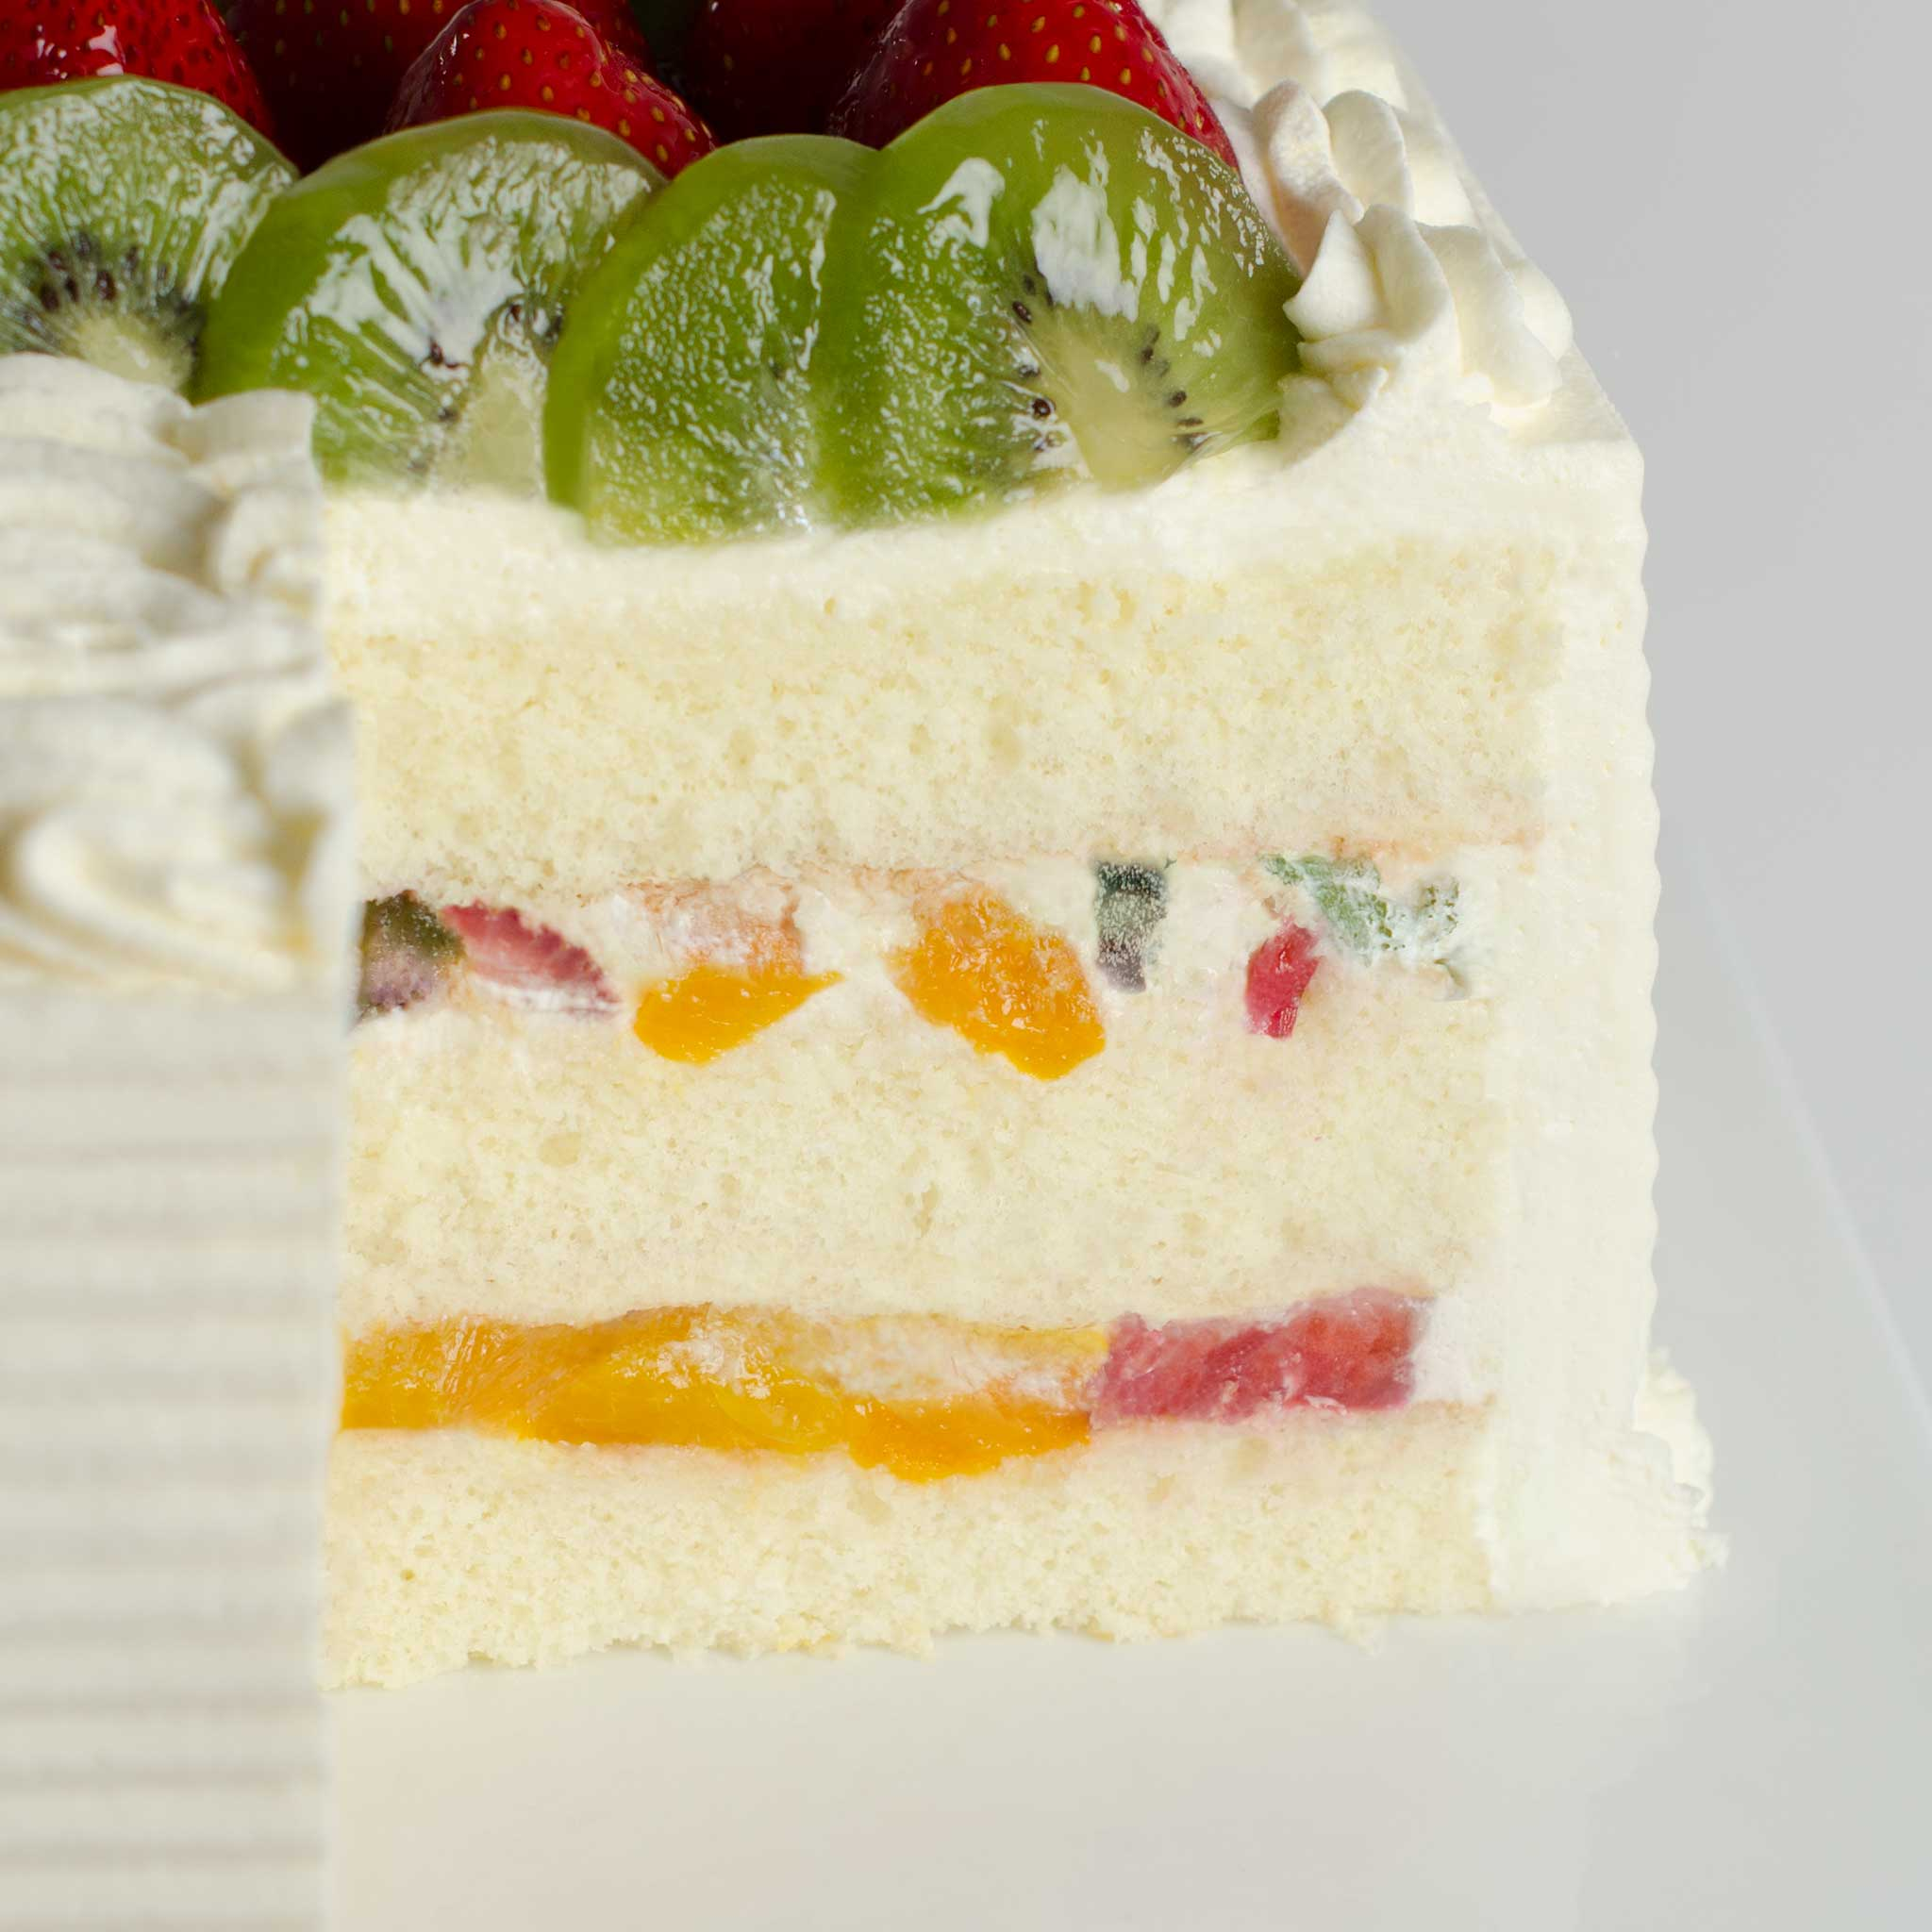 La Rocca Mixed Fruit Torte Celebration Cake - Detail